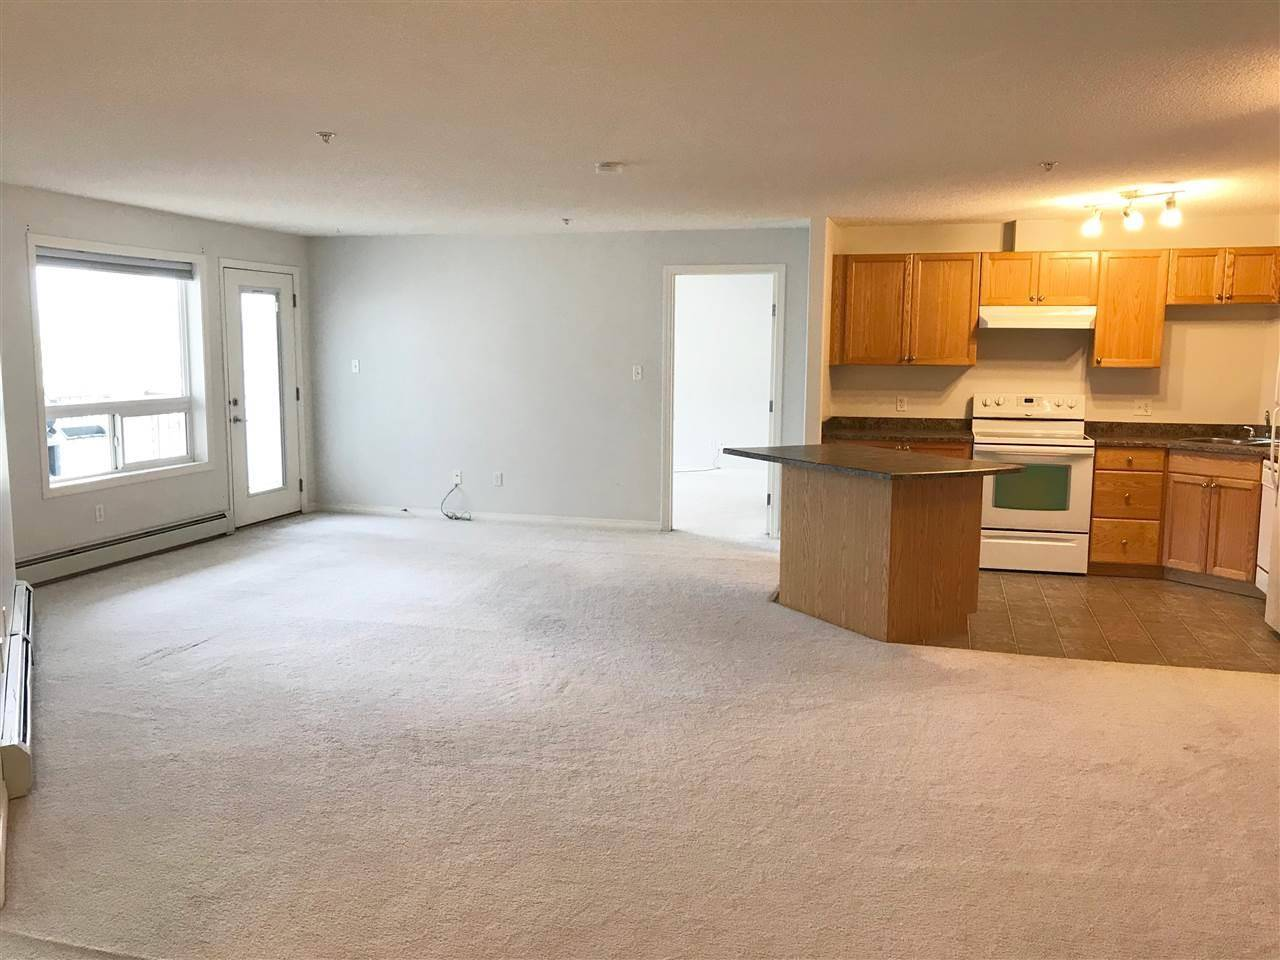 Condo for sale at 330 Clareview Station Dr Nw Unit 1330 Edmonton Alberta - MLS: E4160914